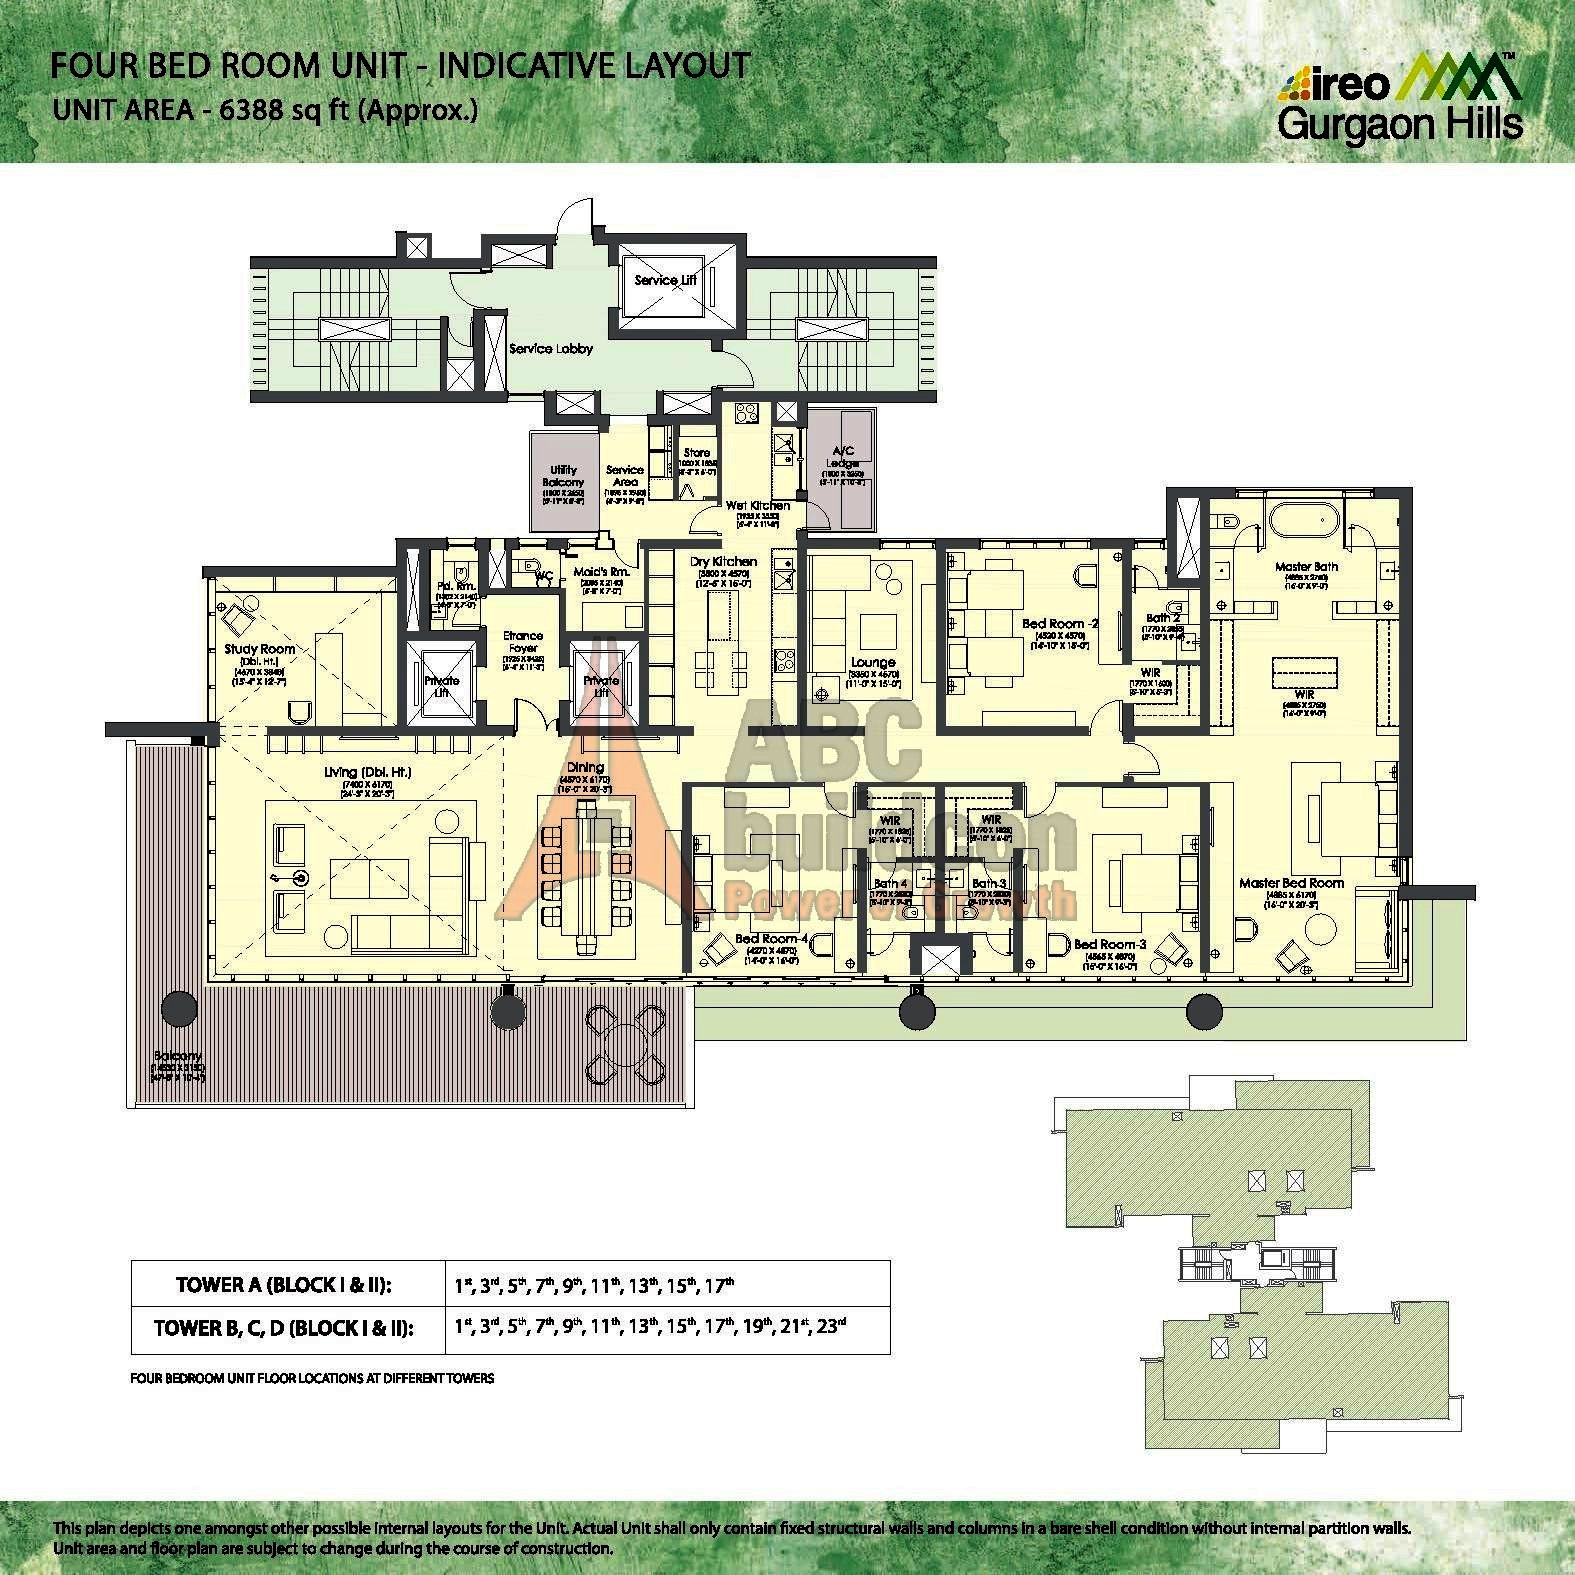 Dlf New Town Heights Floor Plan Ireo Gurgaon Hills Floor Plan Floorplan In